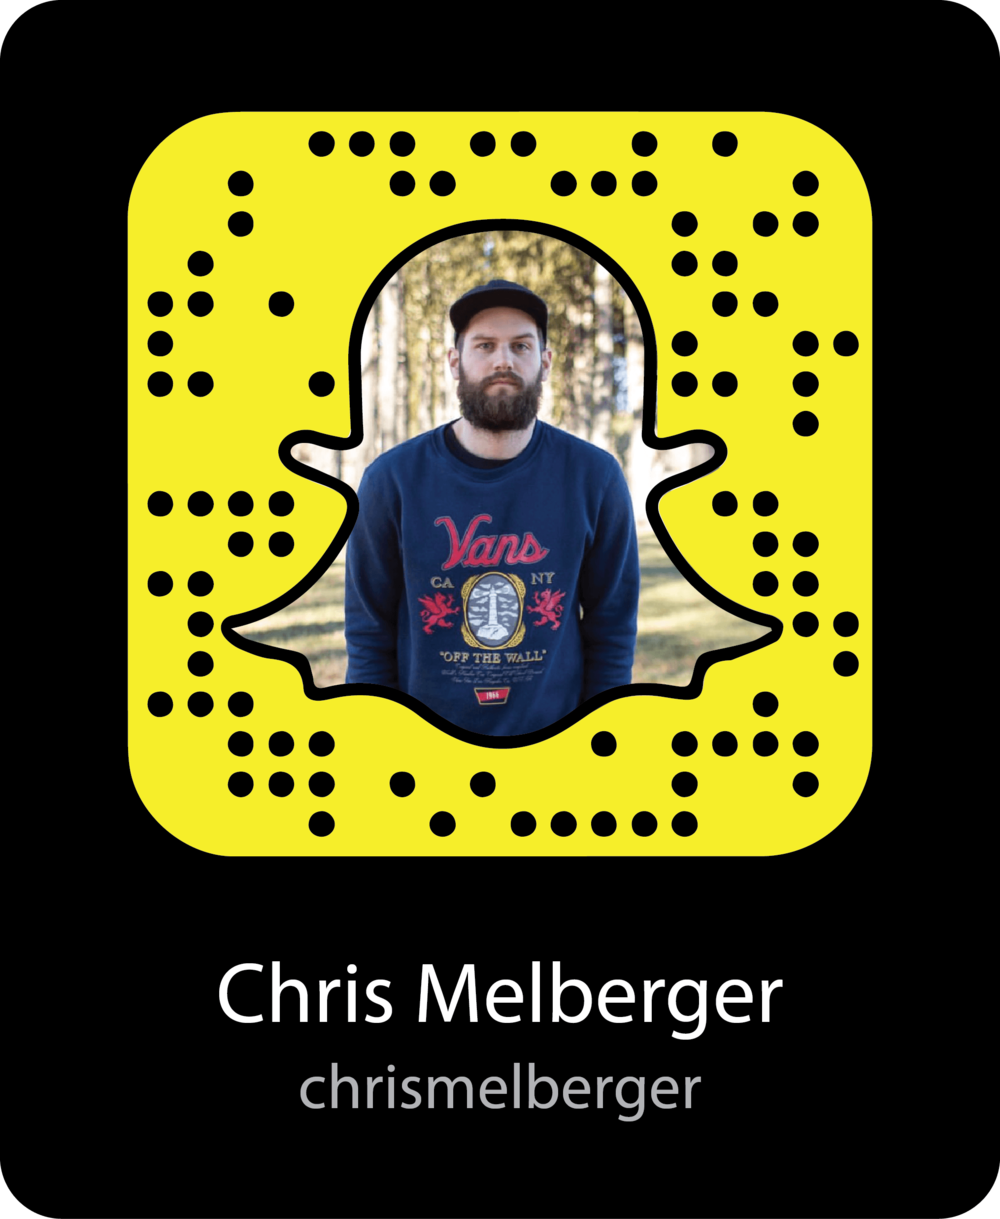 chris-melberger-comedians-snapchat-snapcode